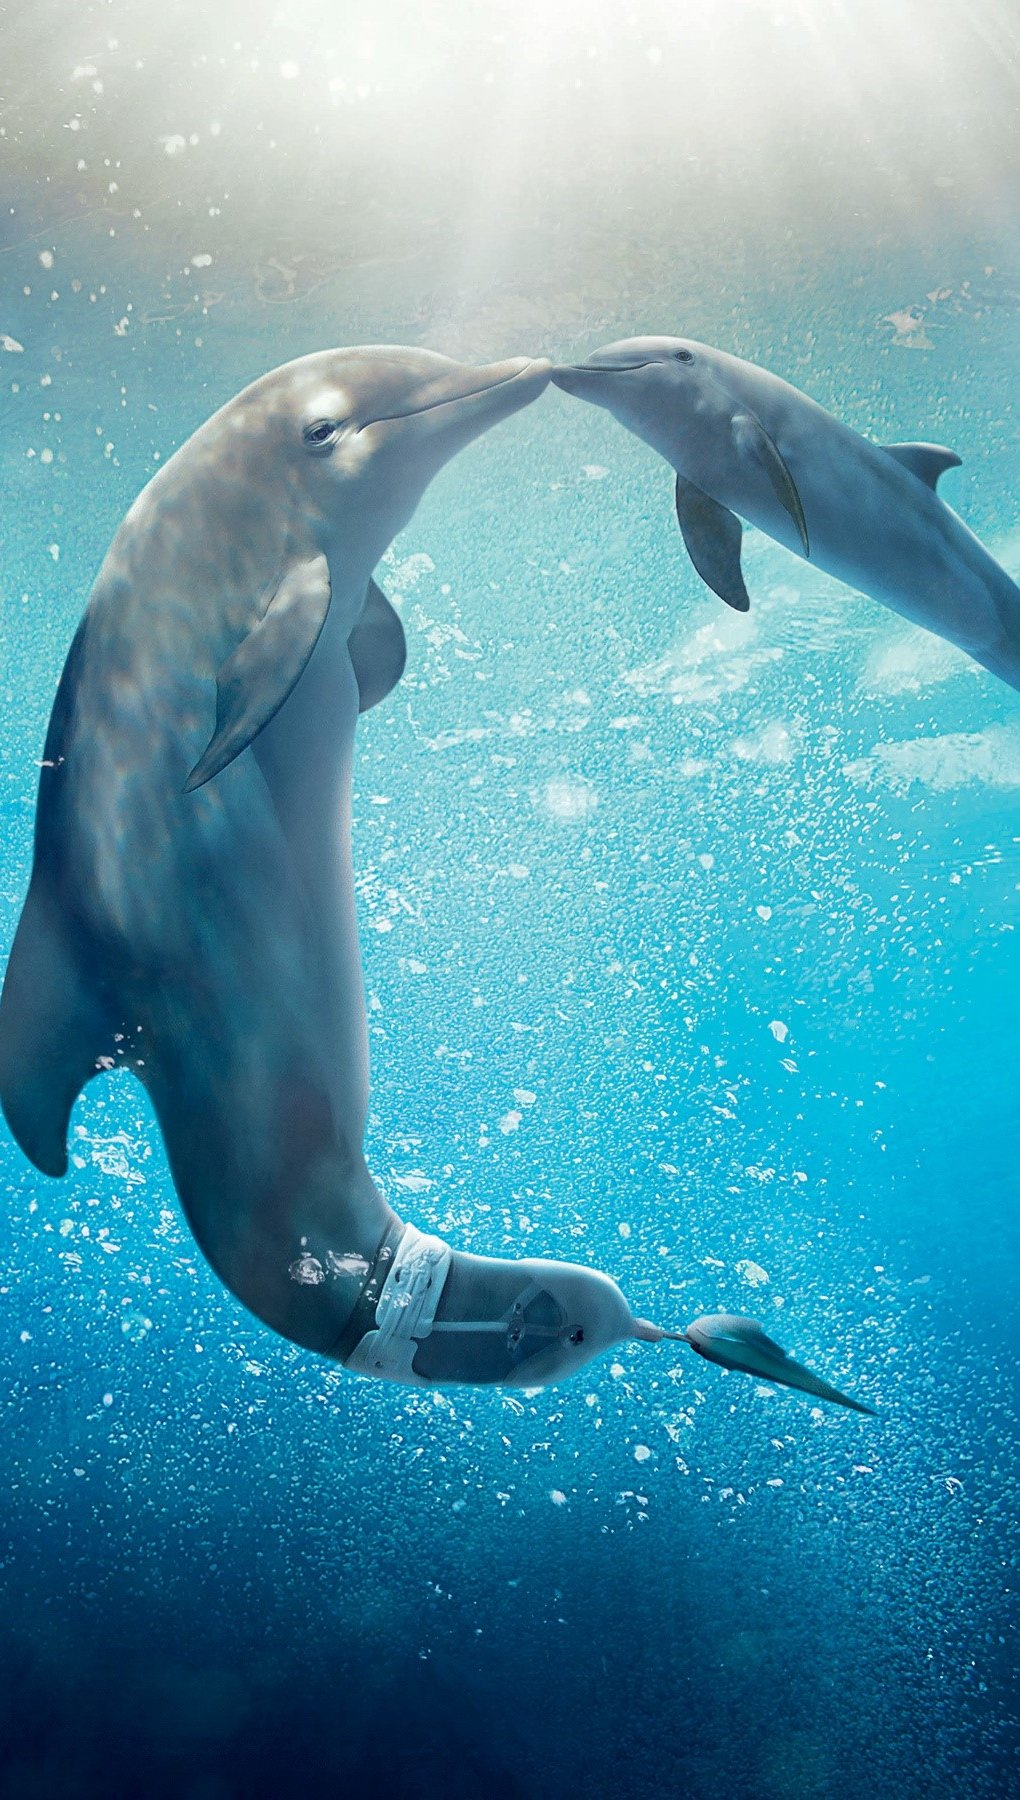 Wallpaper Dolphins Vertical